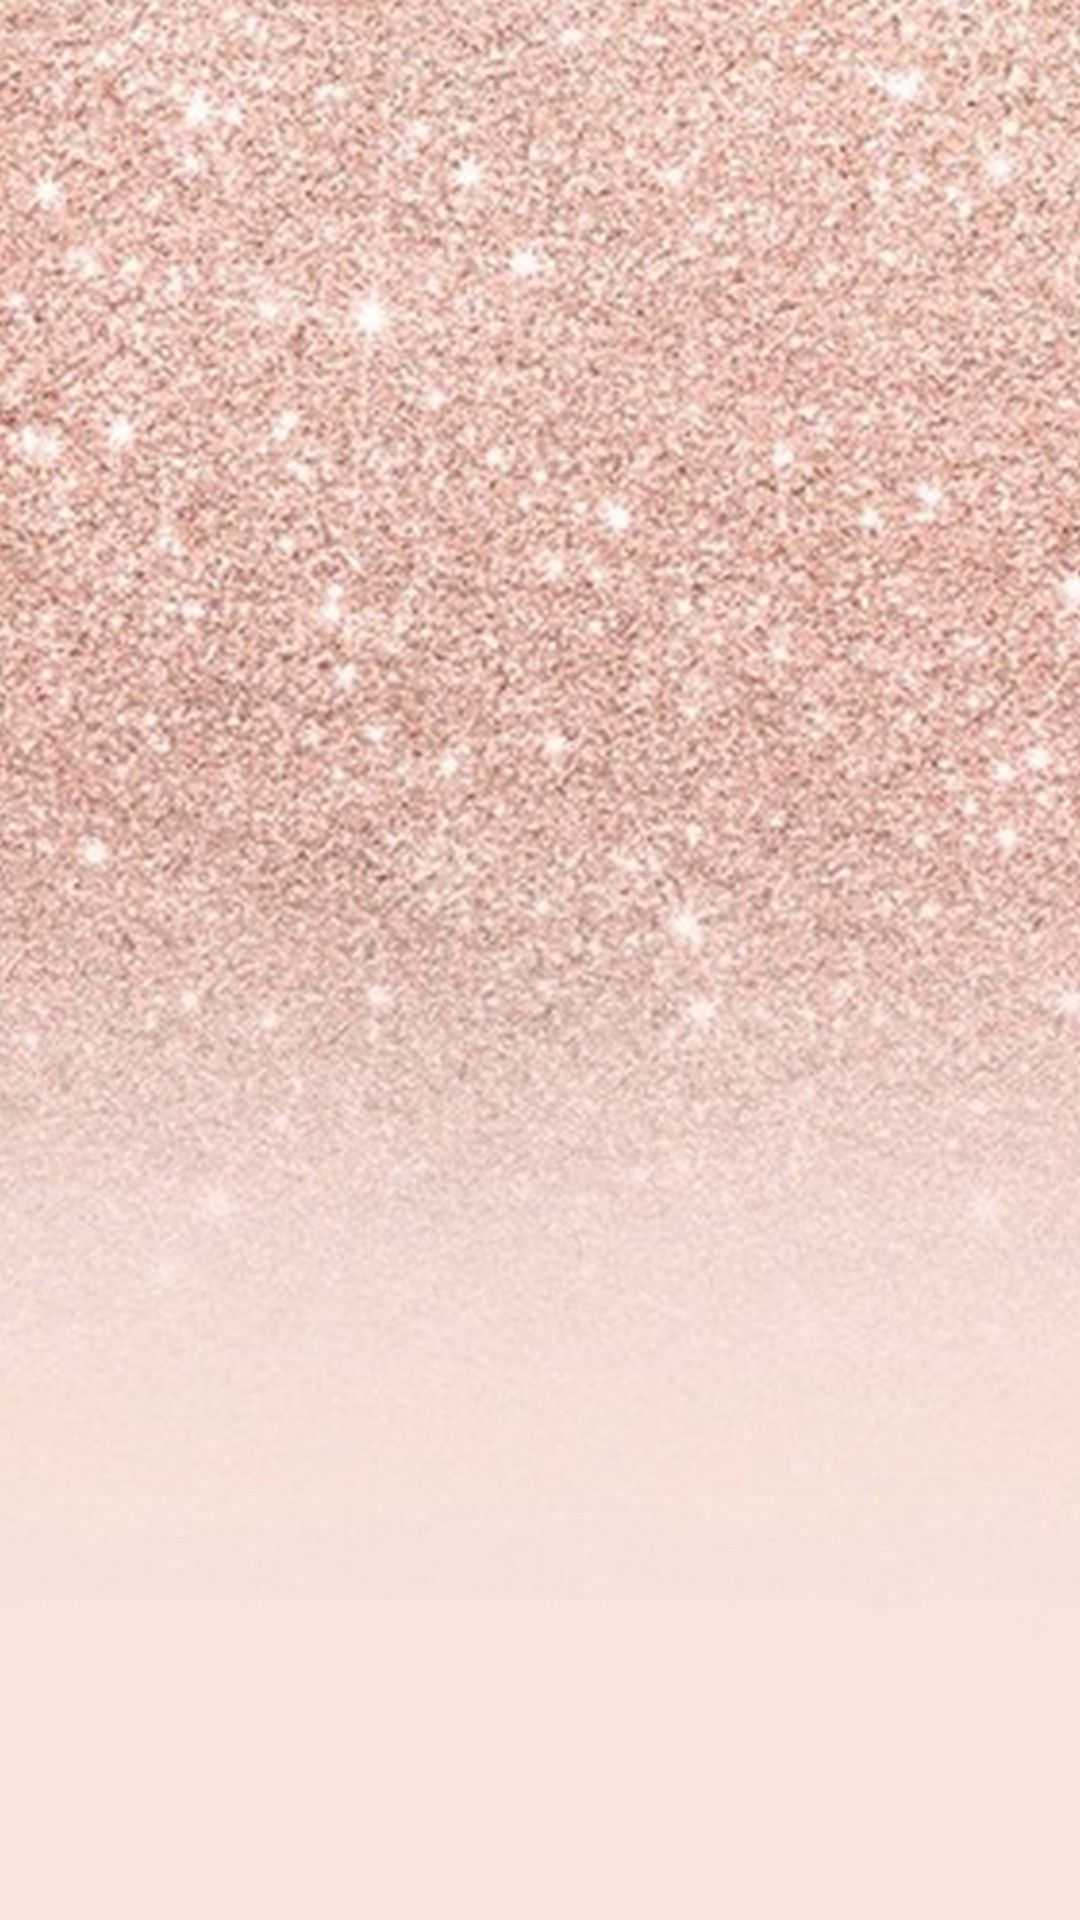 Pin by zenzone on iphone wallpapers in 2019 backsplash - Rose gold glitter iphone wallpaper ...